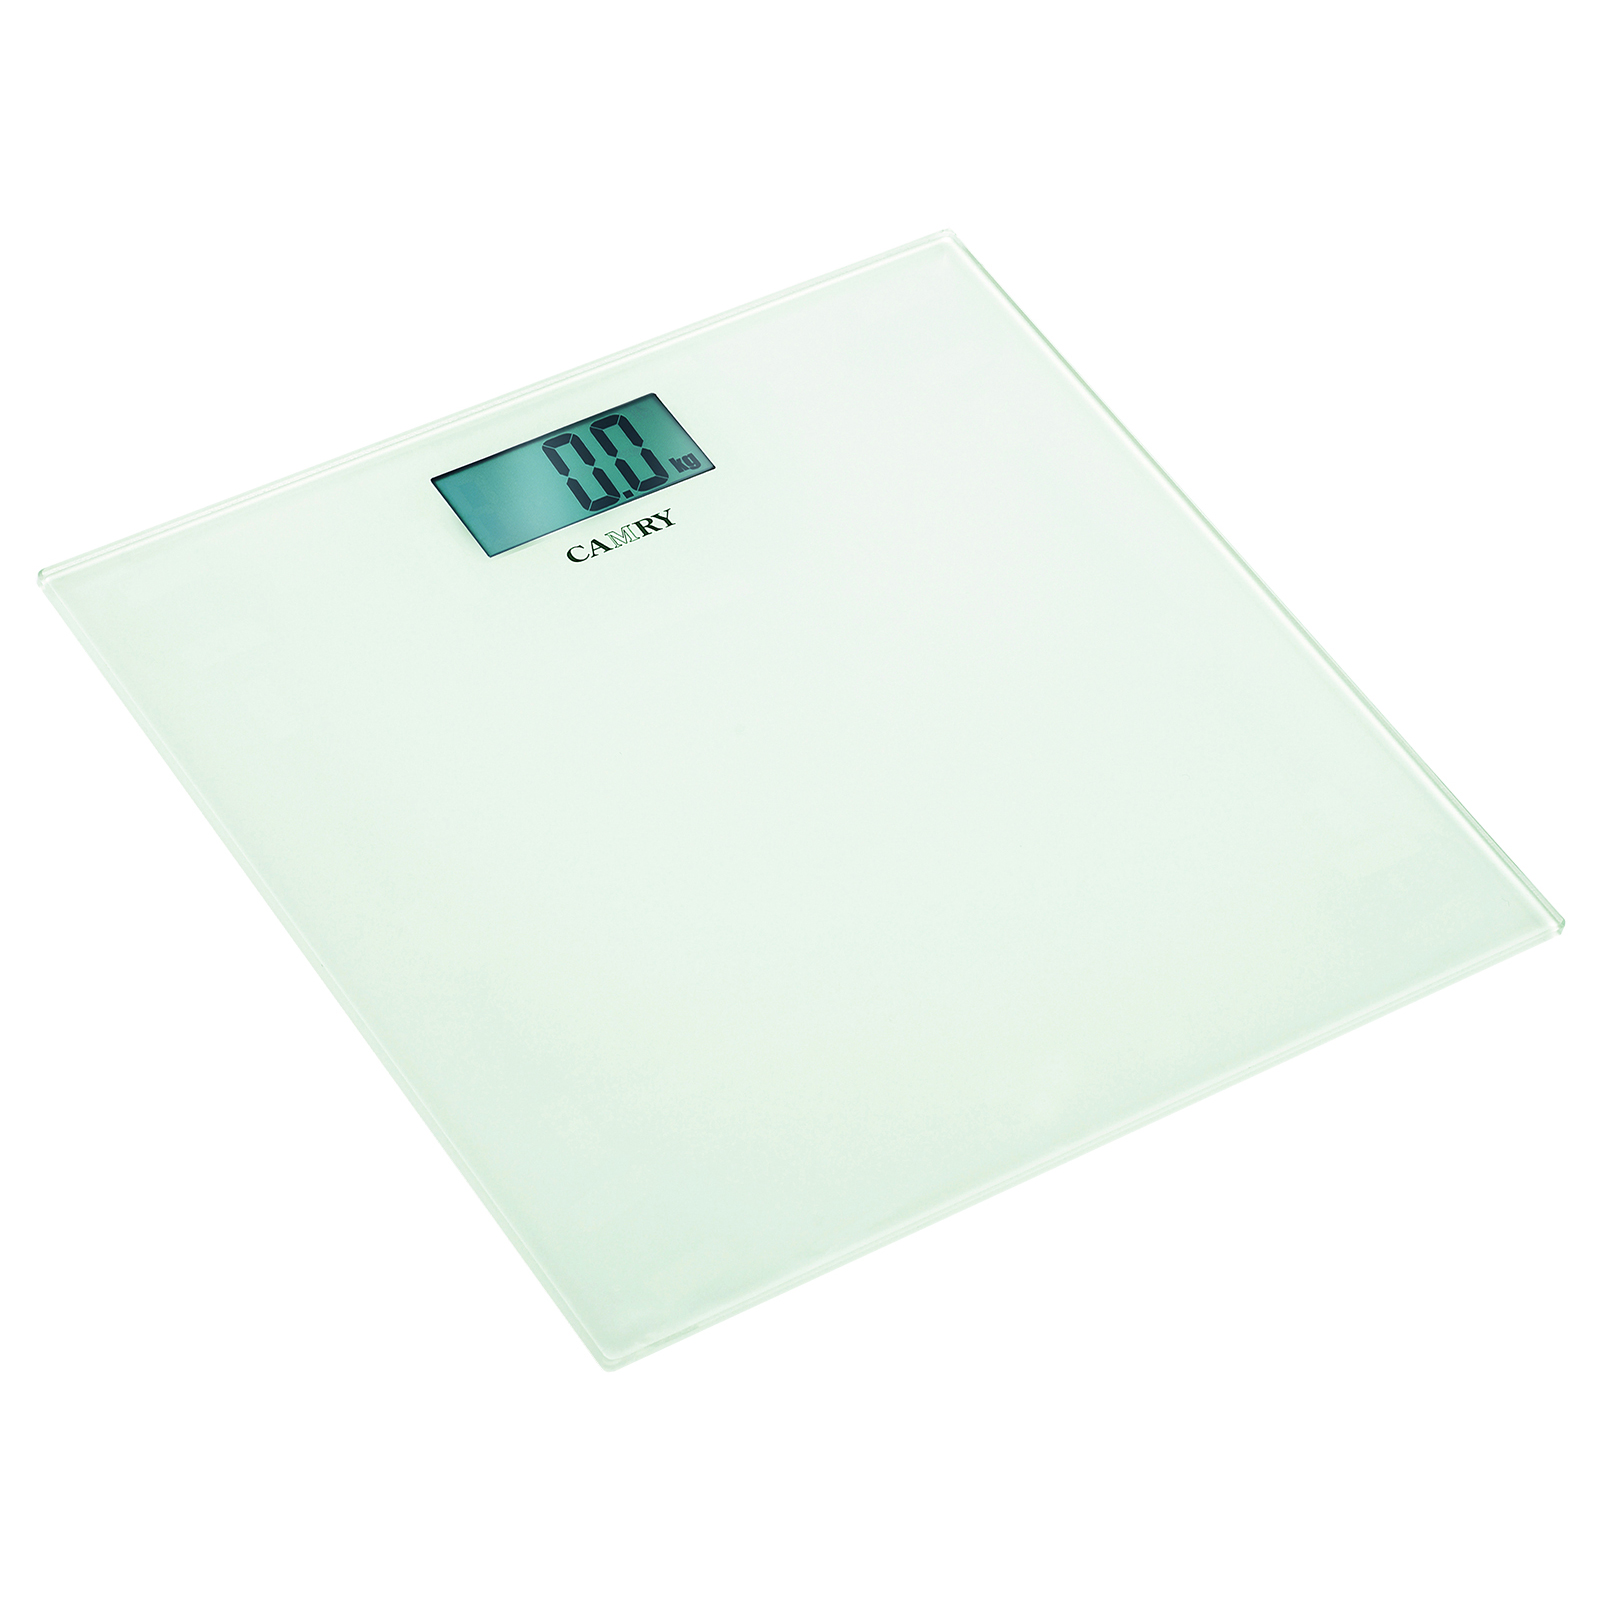 Electronic Bathroom Weighing Scales: Camry Digital Electronic LCD Personal Glass Bathroom Body